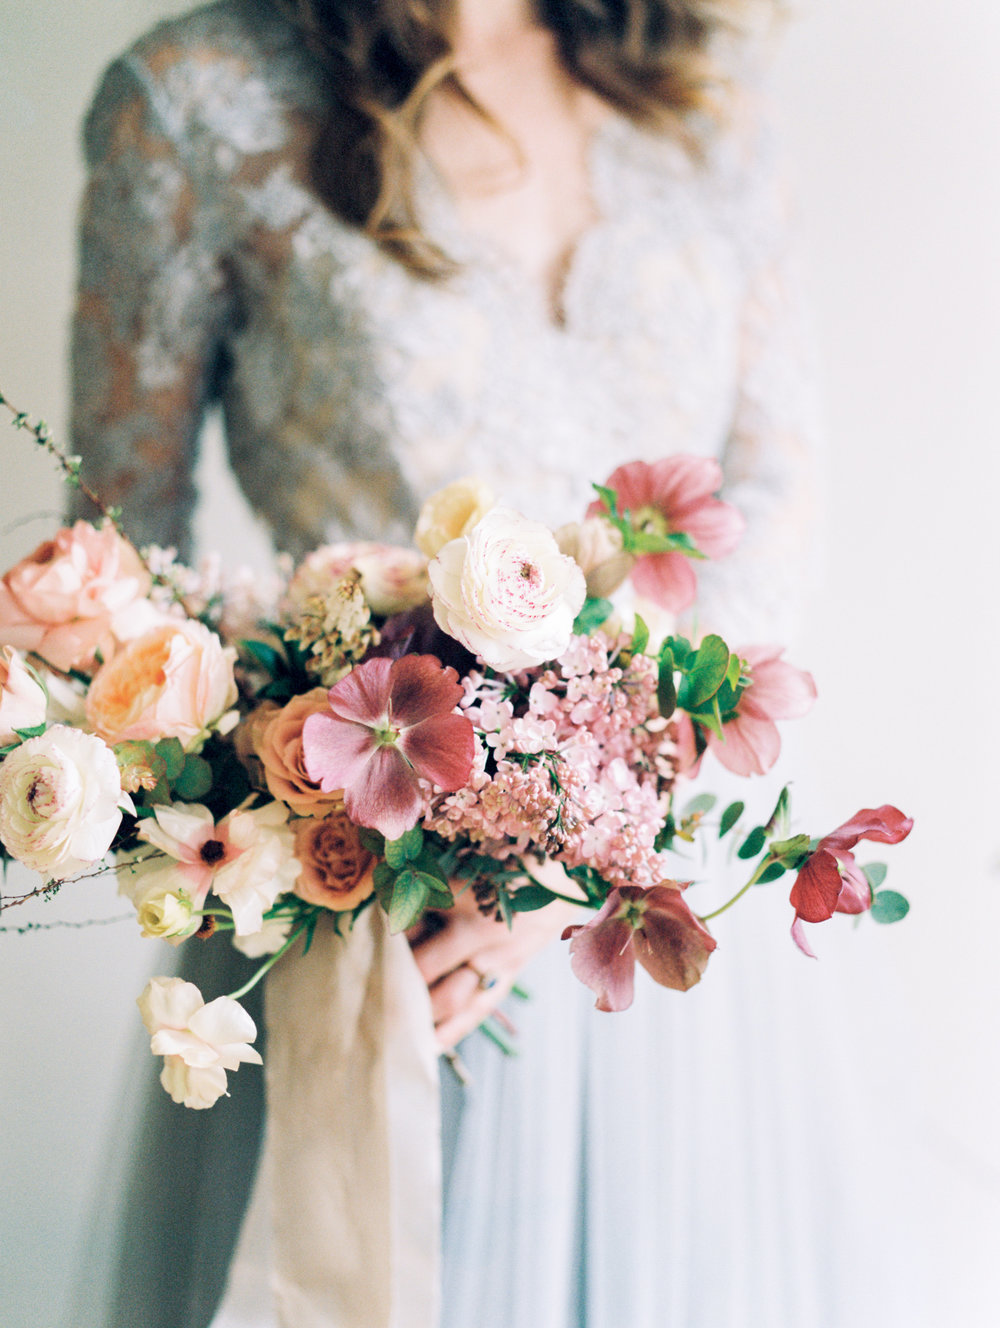 NY wedding photography of spring organic bouquet by Ava Flora and Alexandra Grecco blue wedding gown